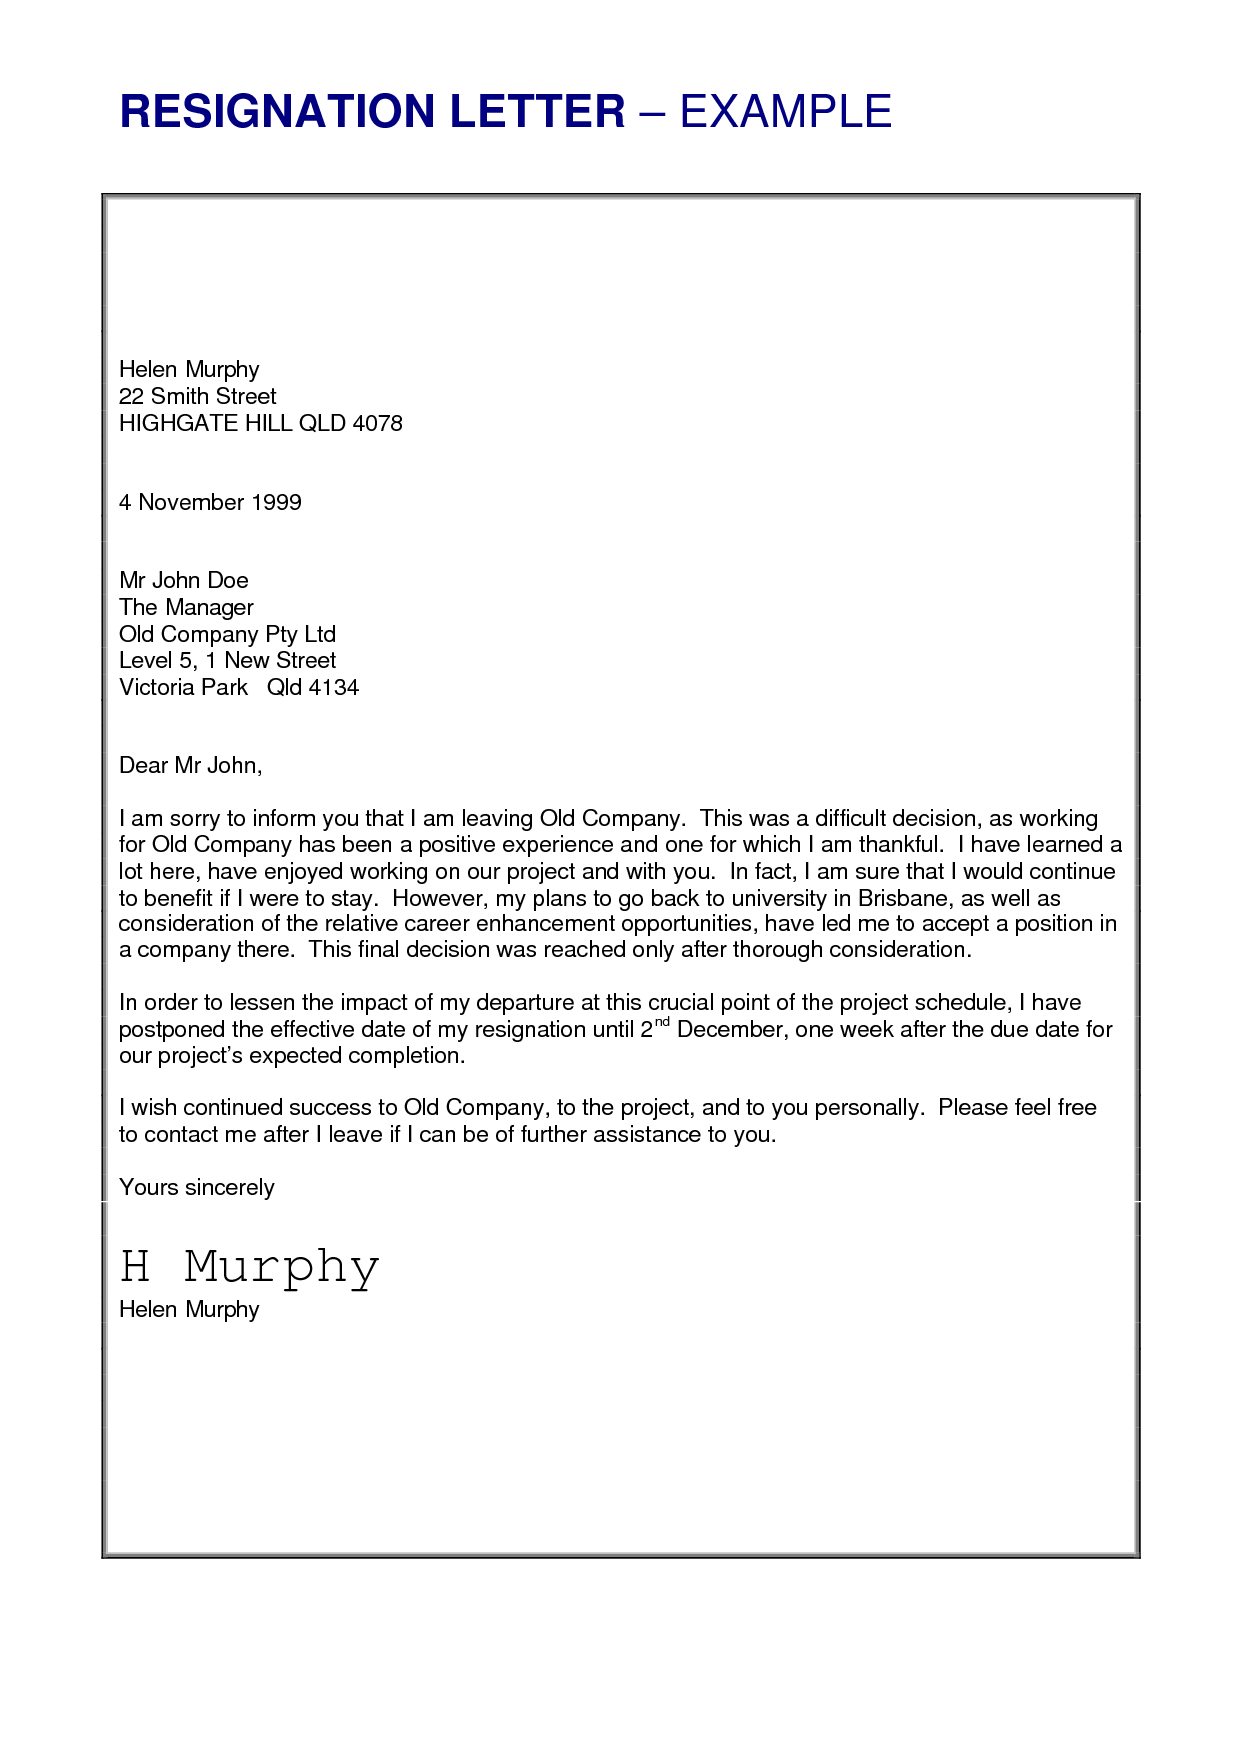 Resignation Format Job Resignation Letter Sample  Loganun Blog  Best Letter